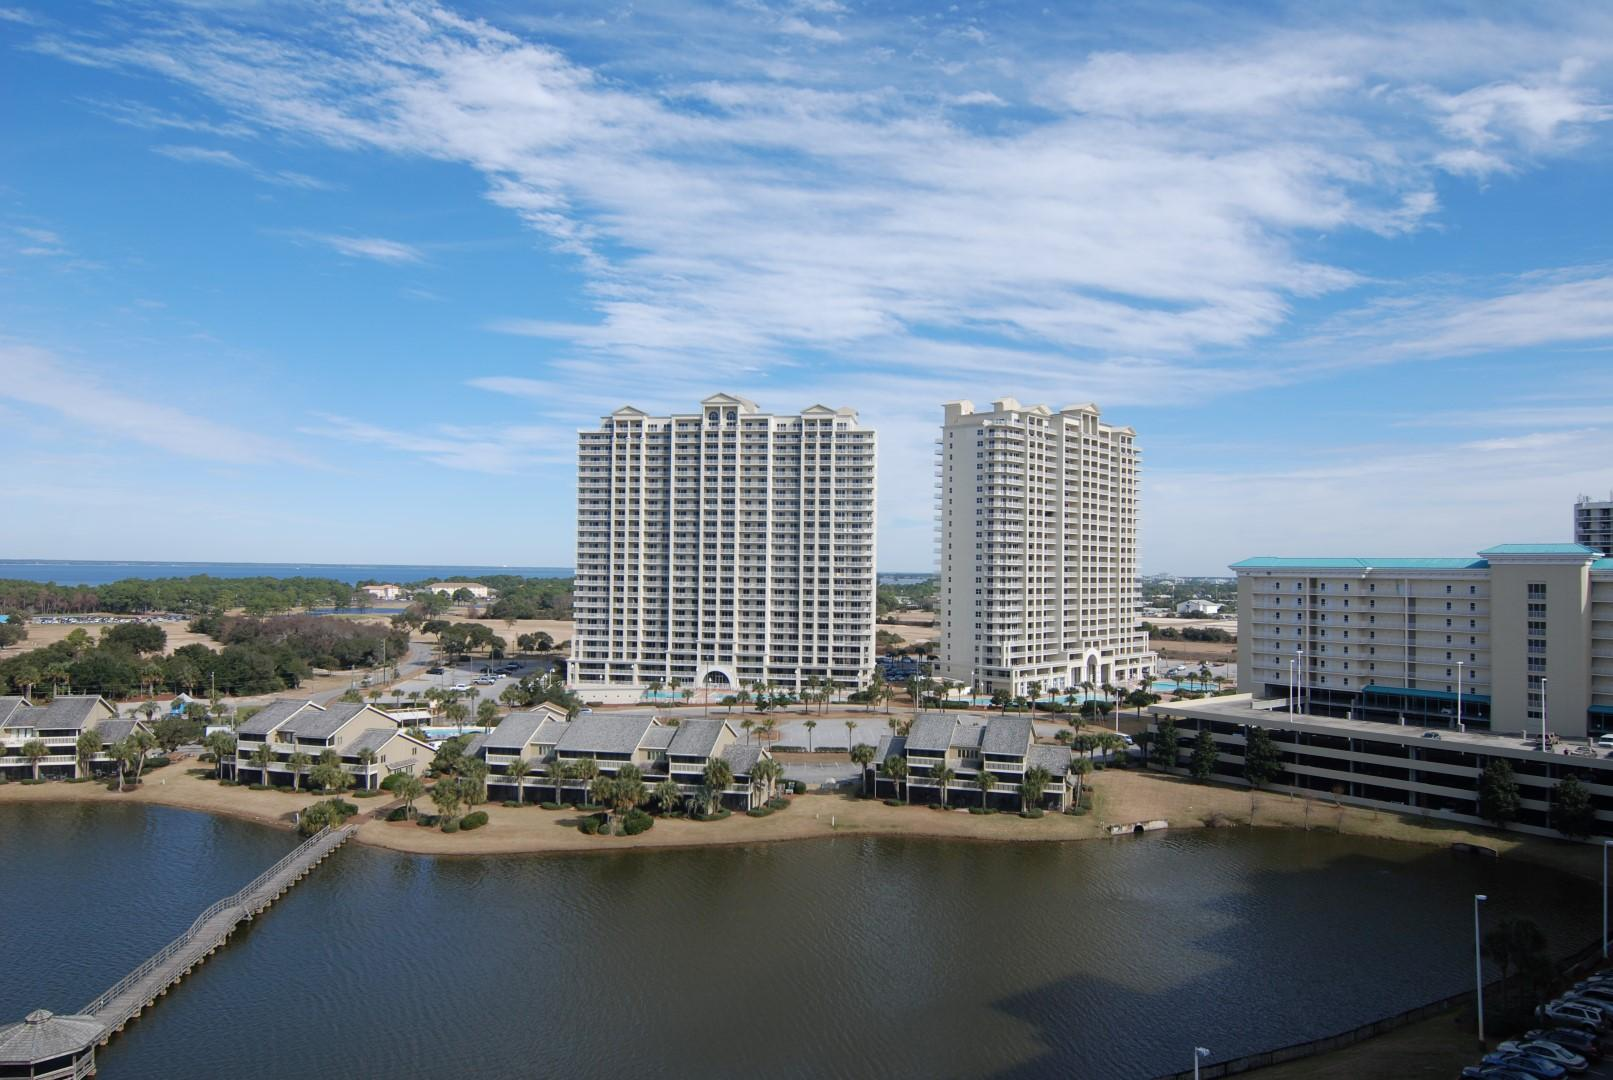 Miramar Beach Real Estate Listing, featured MLS property E759814